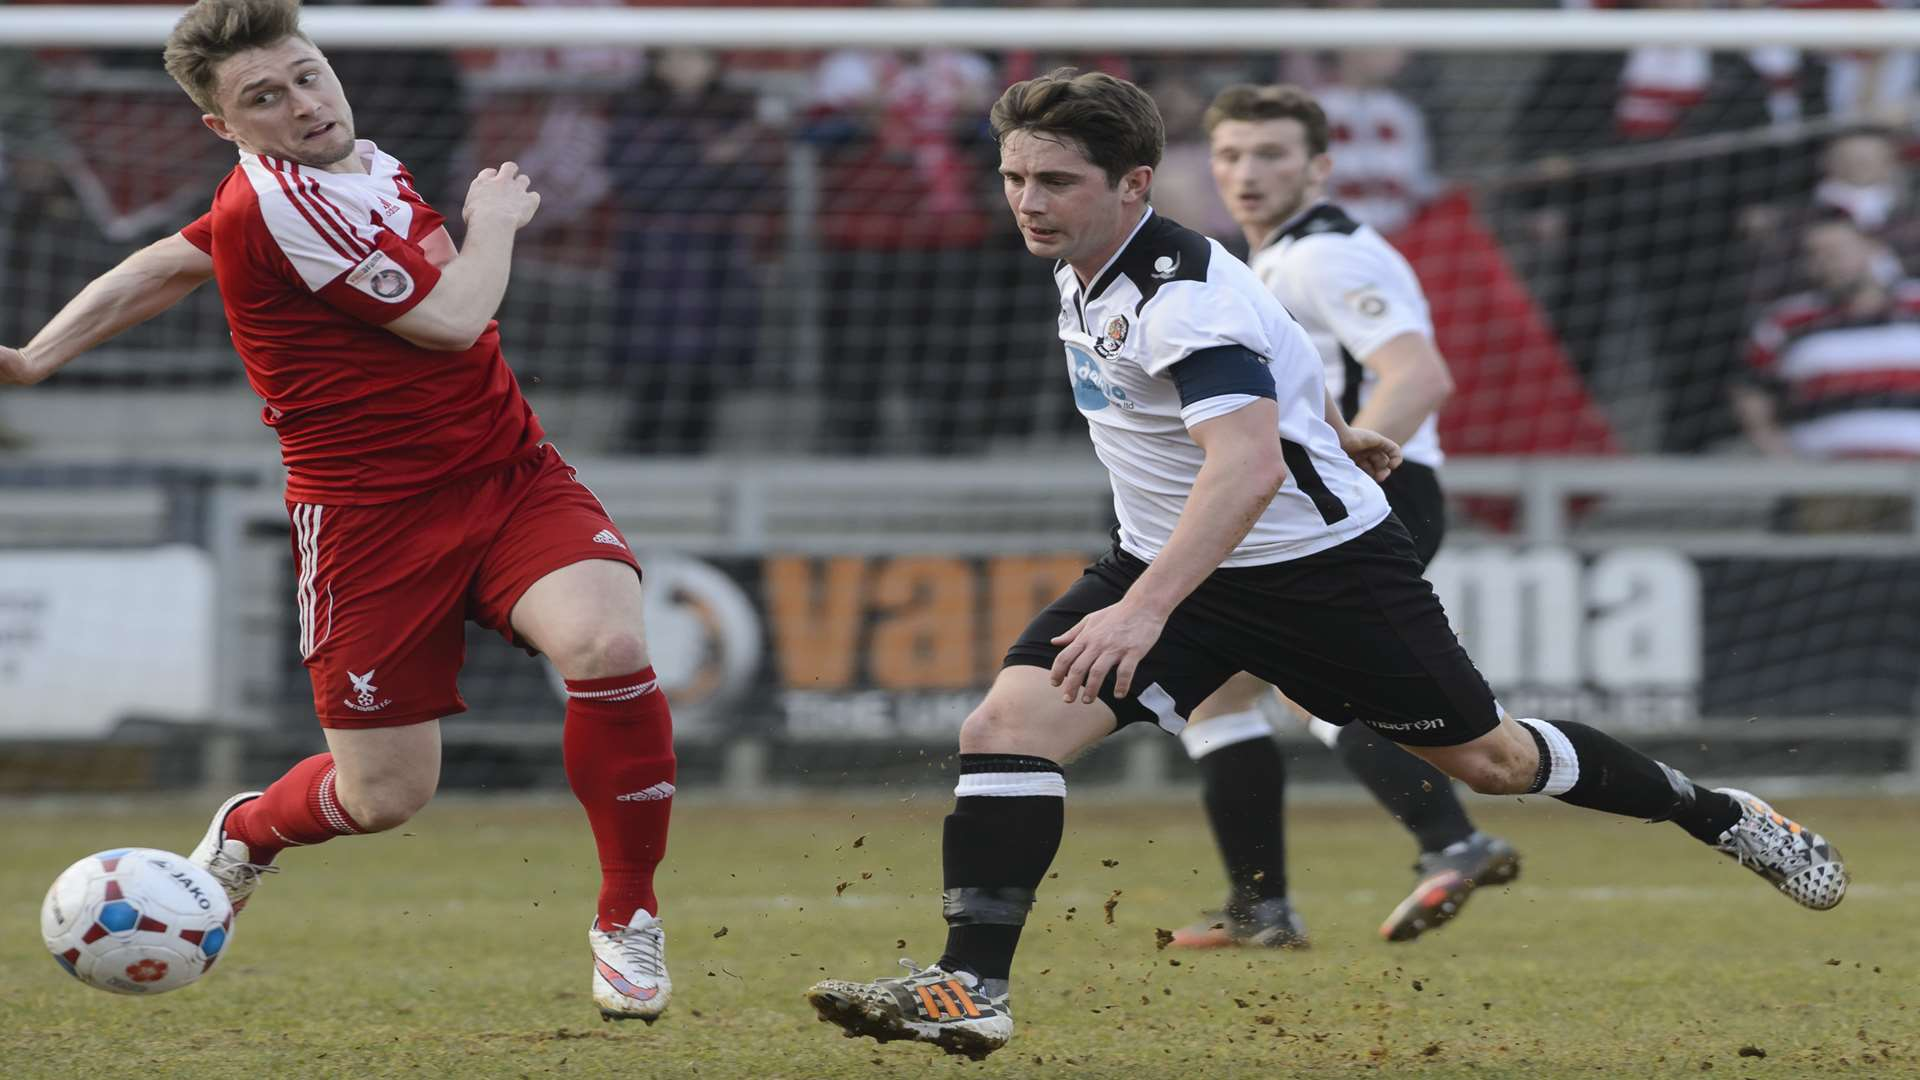 Lee Noble had to play 90 minutes for Dartford against Whitehawk on Saturday Picture: Andy Payton